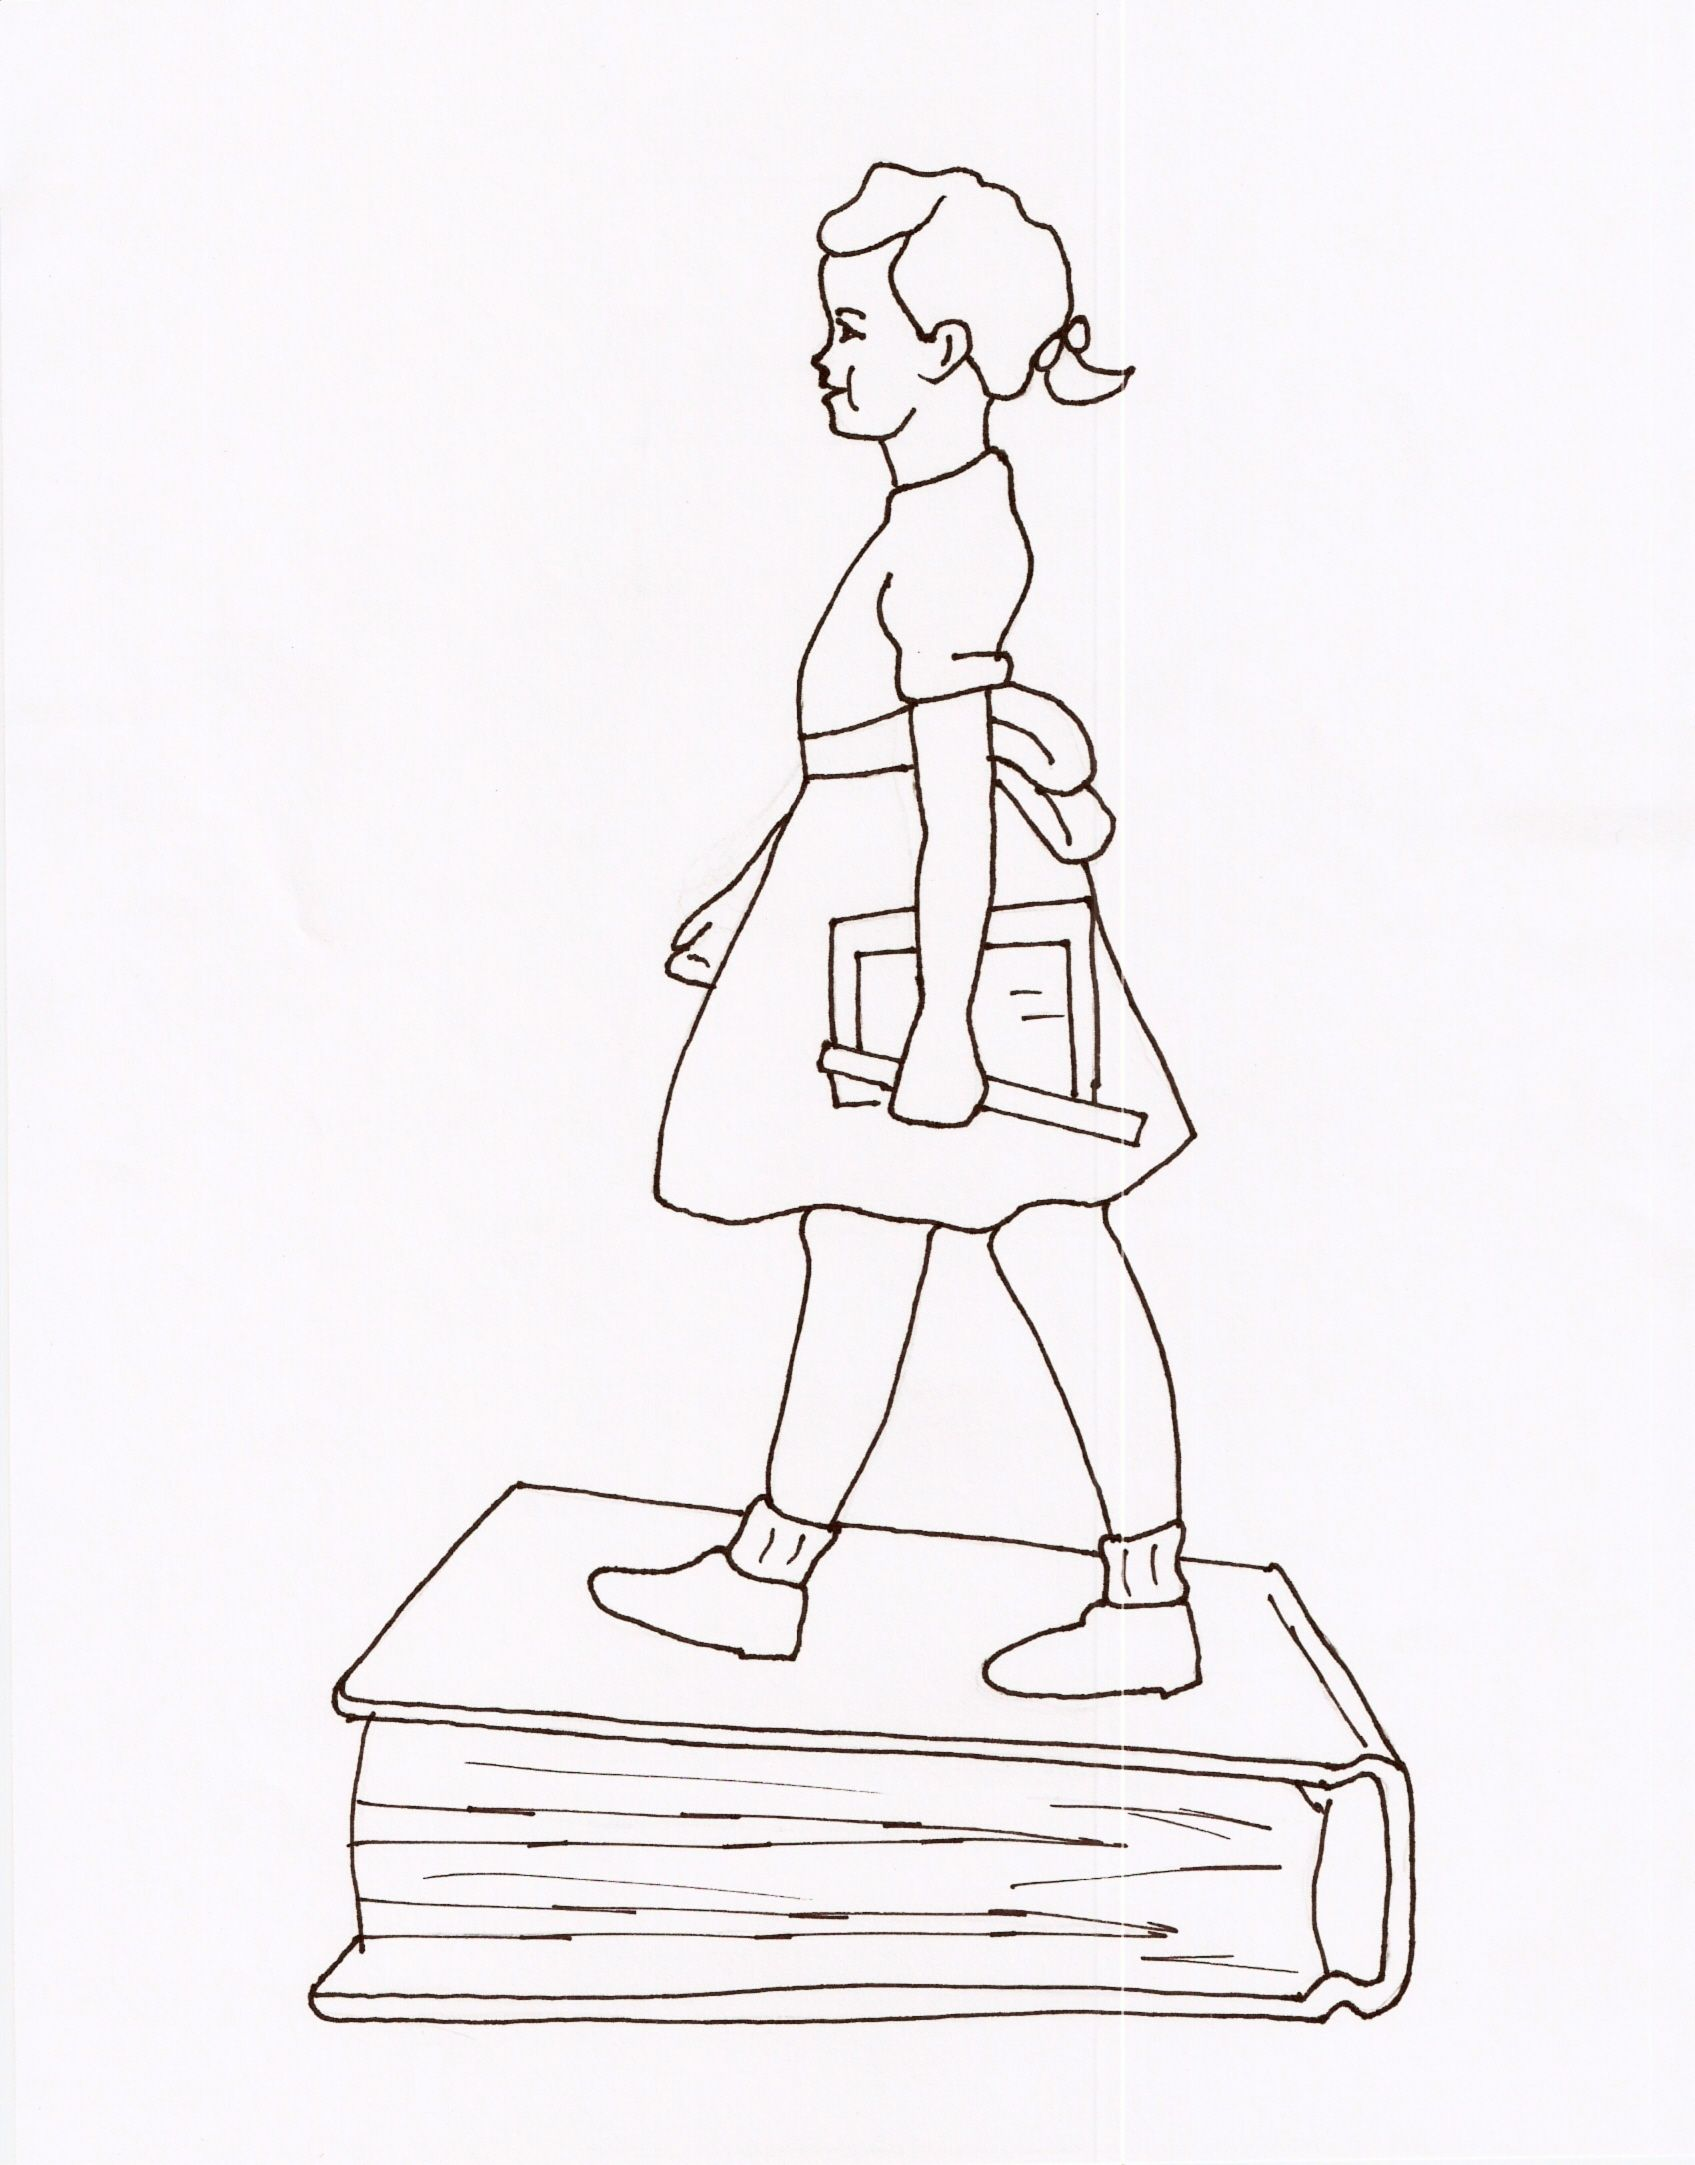 worksheet Ruby Bridges Worksheets For Second Grade ruby bridges goes to school by coloring page worksheets